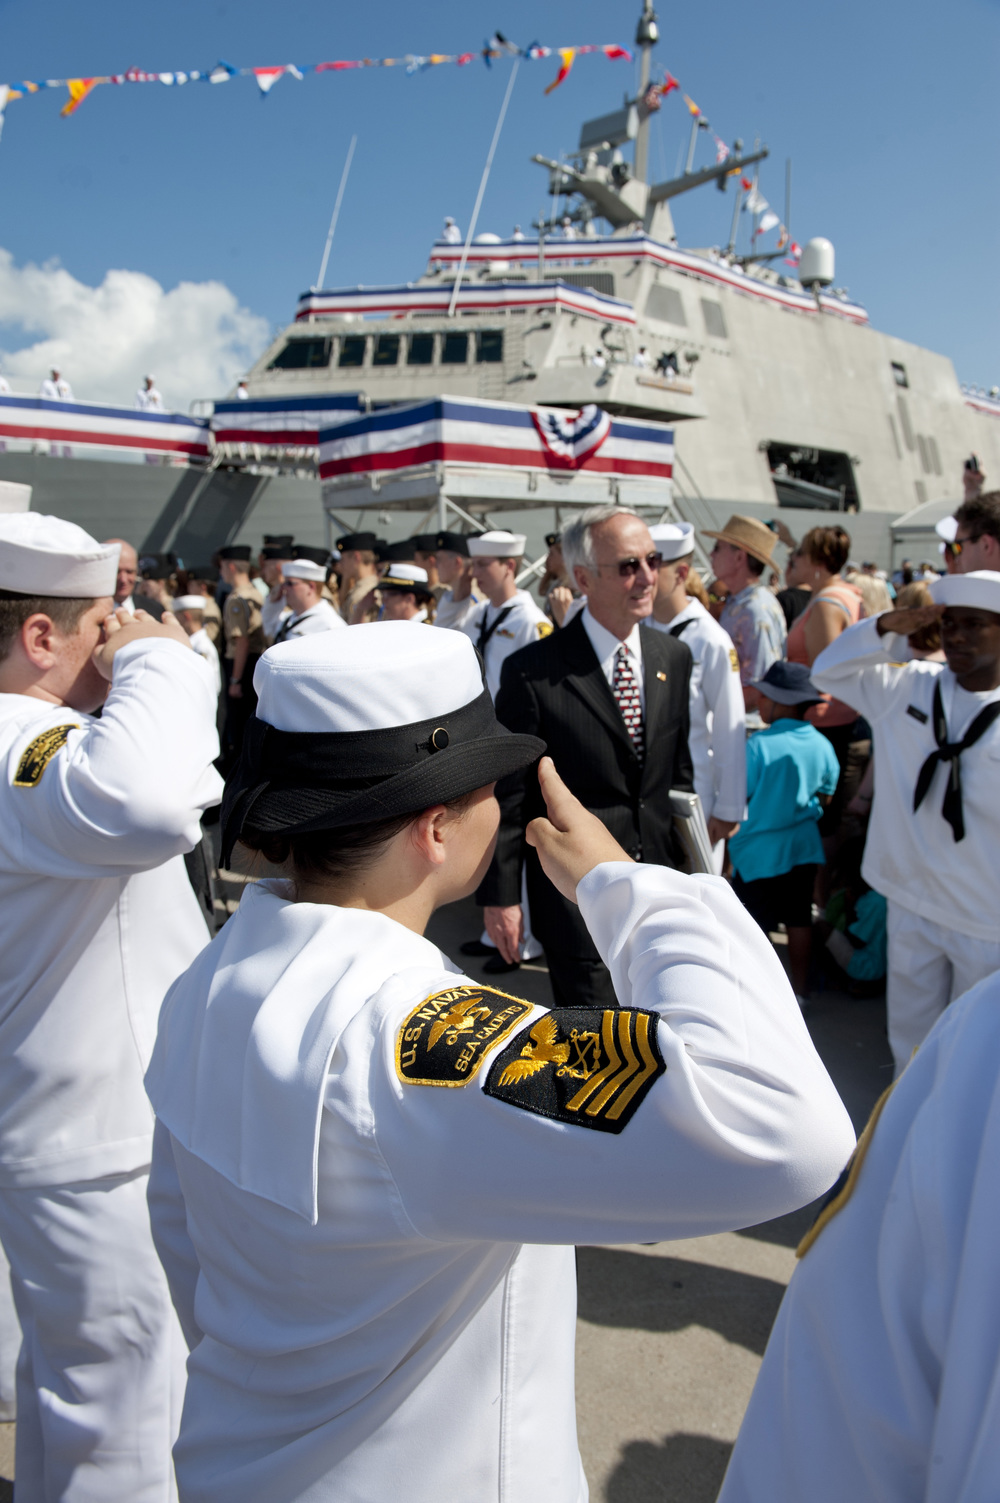 Sea Cadets render honors to former Secretary of the Navy